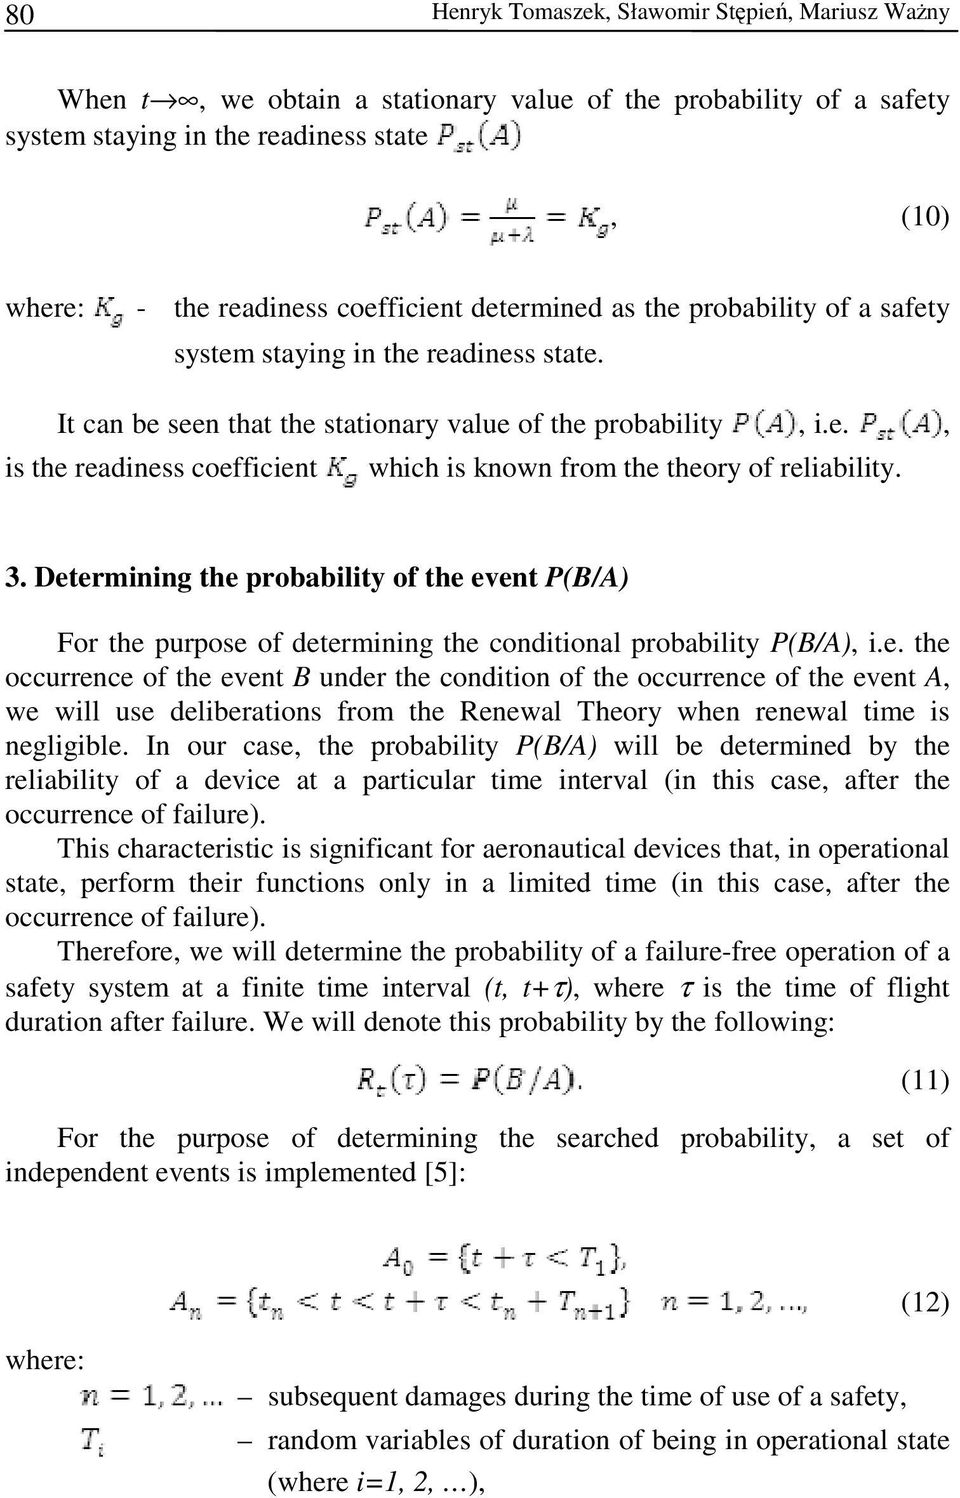 3. Determining the probability of the event P(B/A) For the purpose of determining the conditional probability P(B/A), i.e. the occurrence of the event B under the condition of the occurrence of the event A, we will use deliberations from the Renewal Theory when renewal time is negligible.